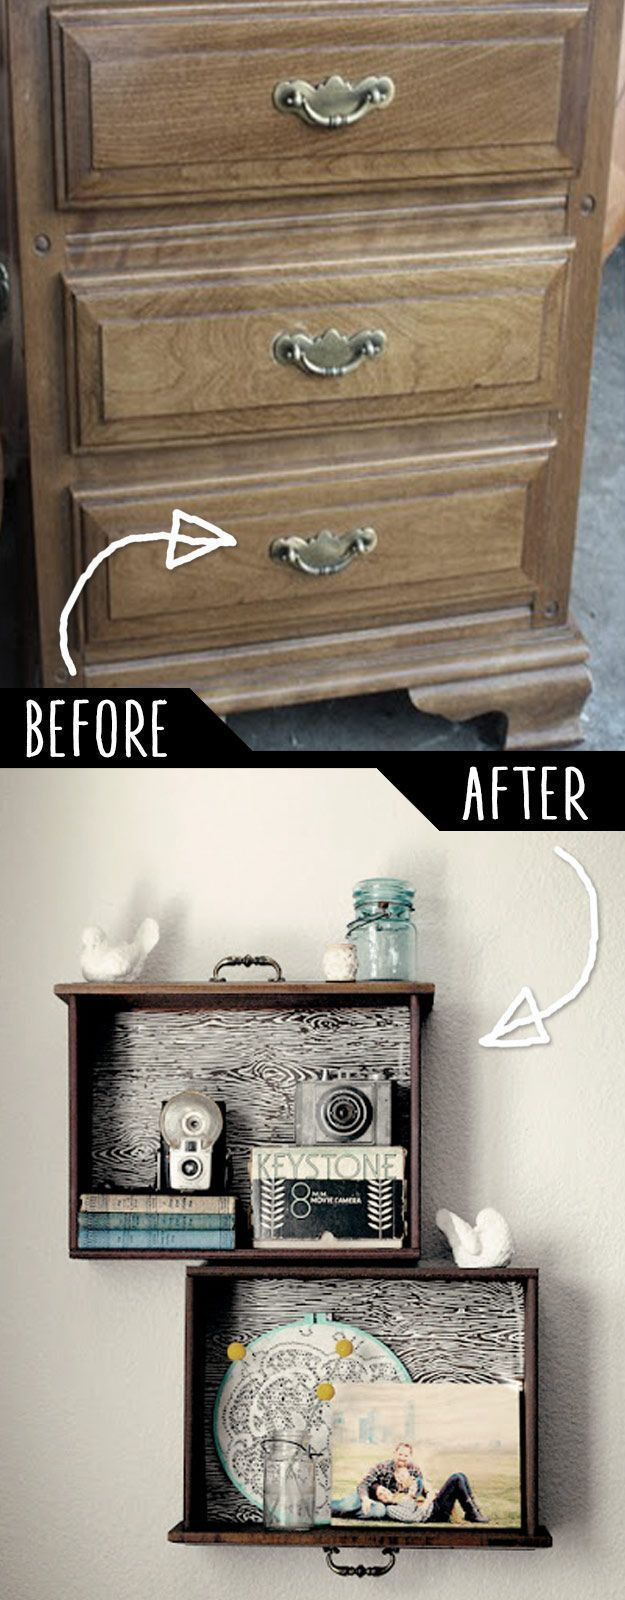 39 Clevere DIY-Möbel-Hacks - #Clevere #DIYMöbelHacks #forbedroom #clevere #diy...